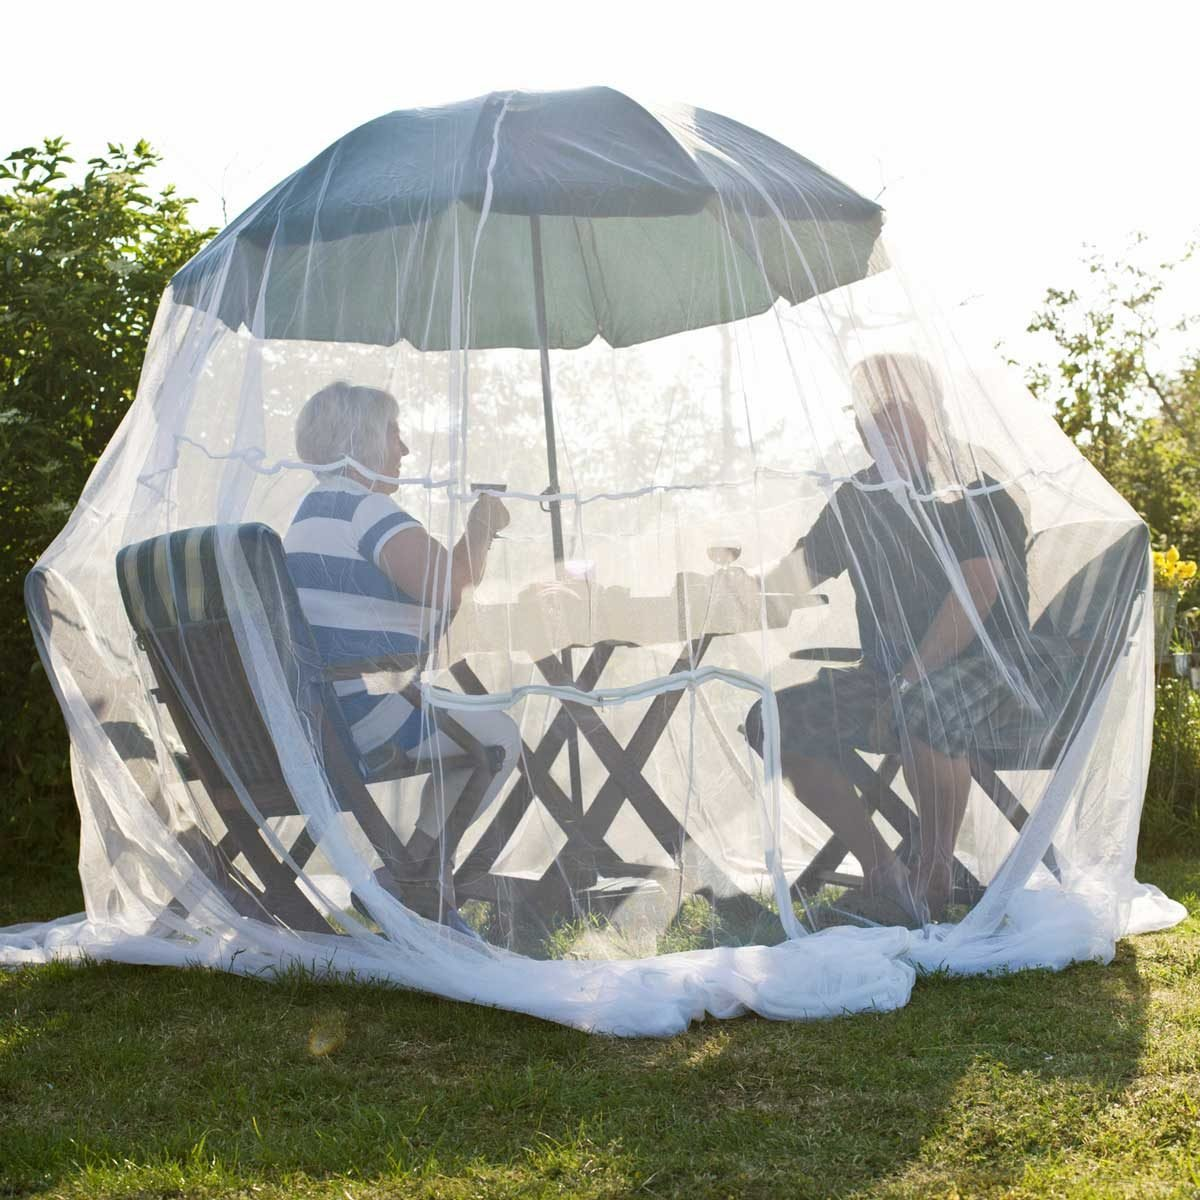 8 Best Insect Nets for Your Deck and Patio